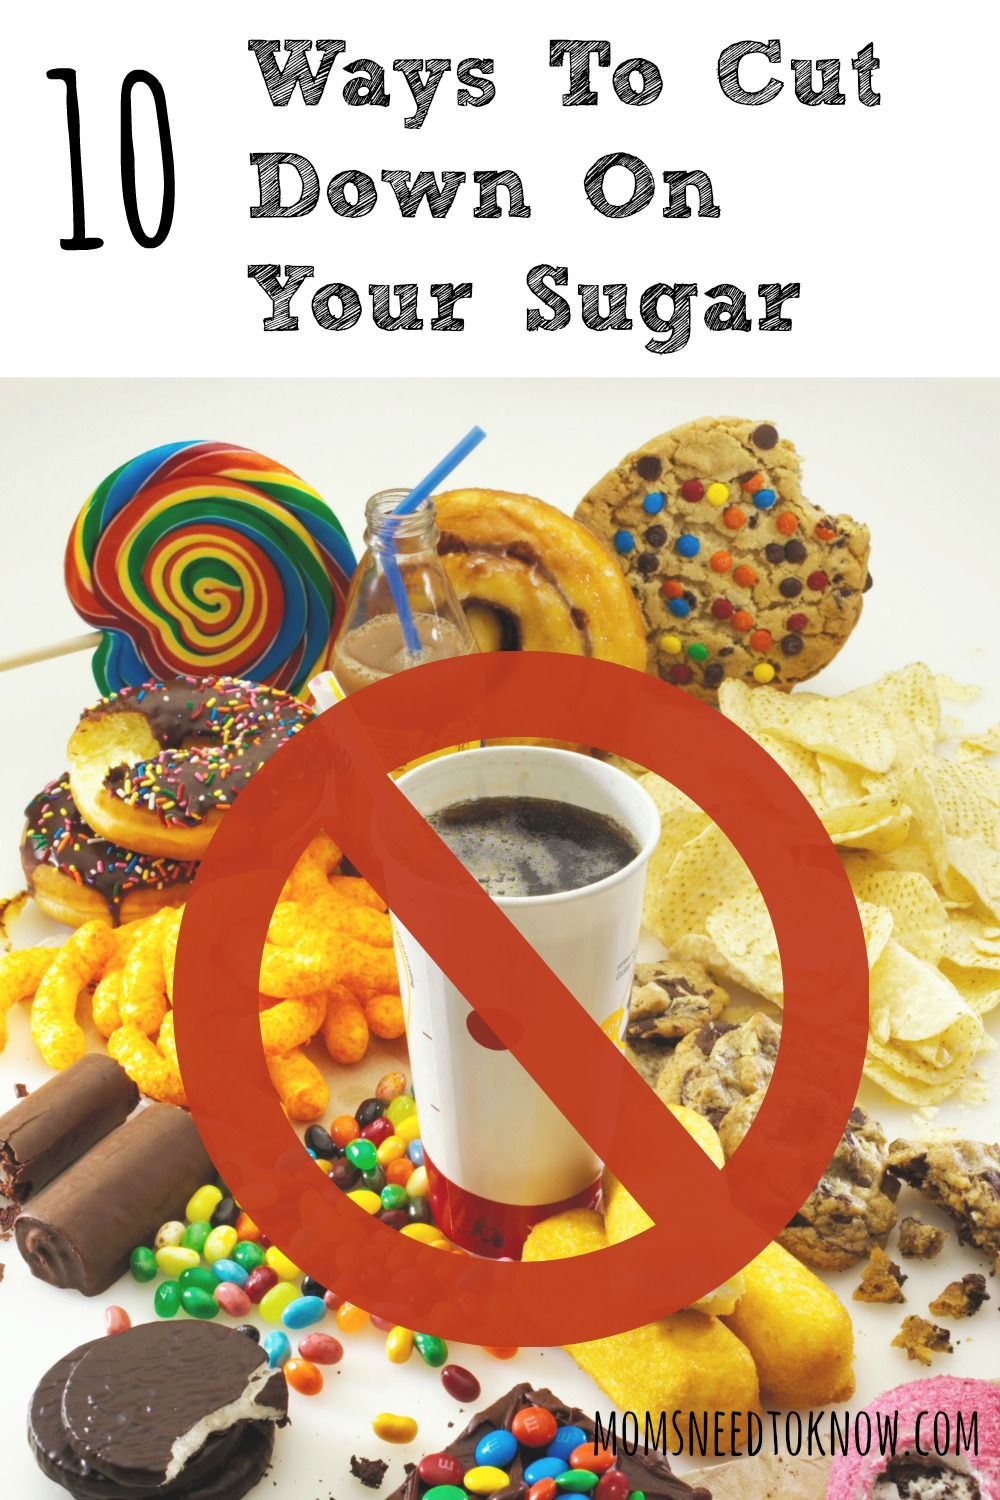 10 Ways To Cut Down On Your Sugar